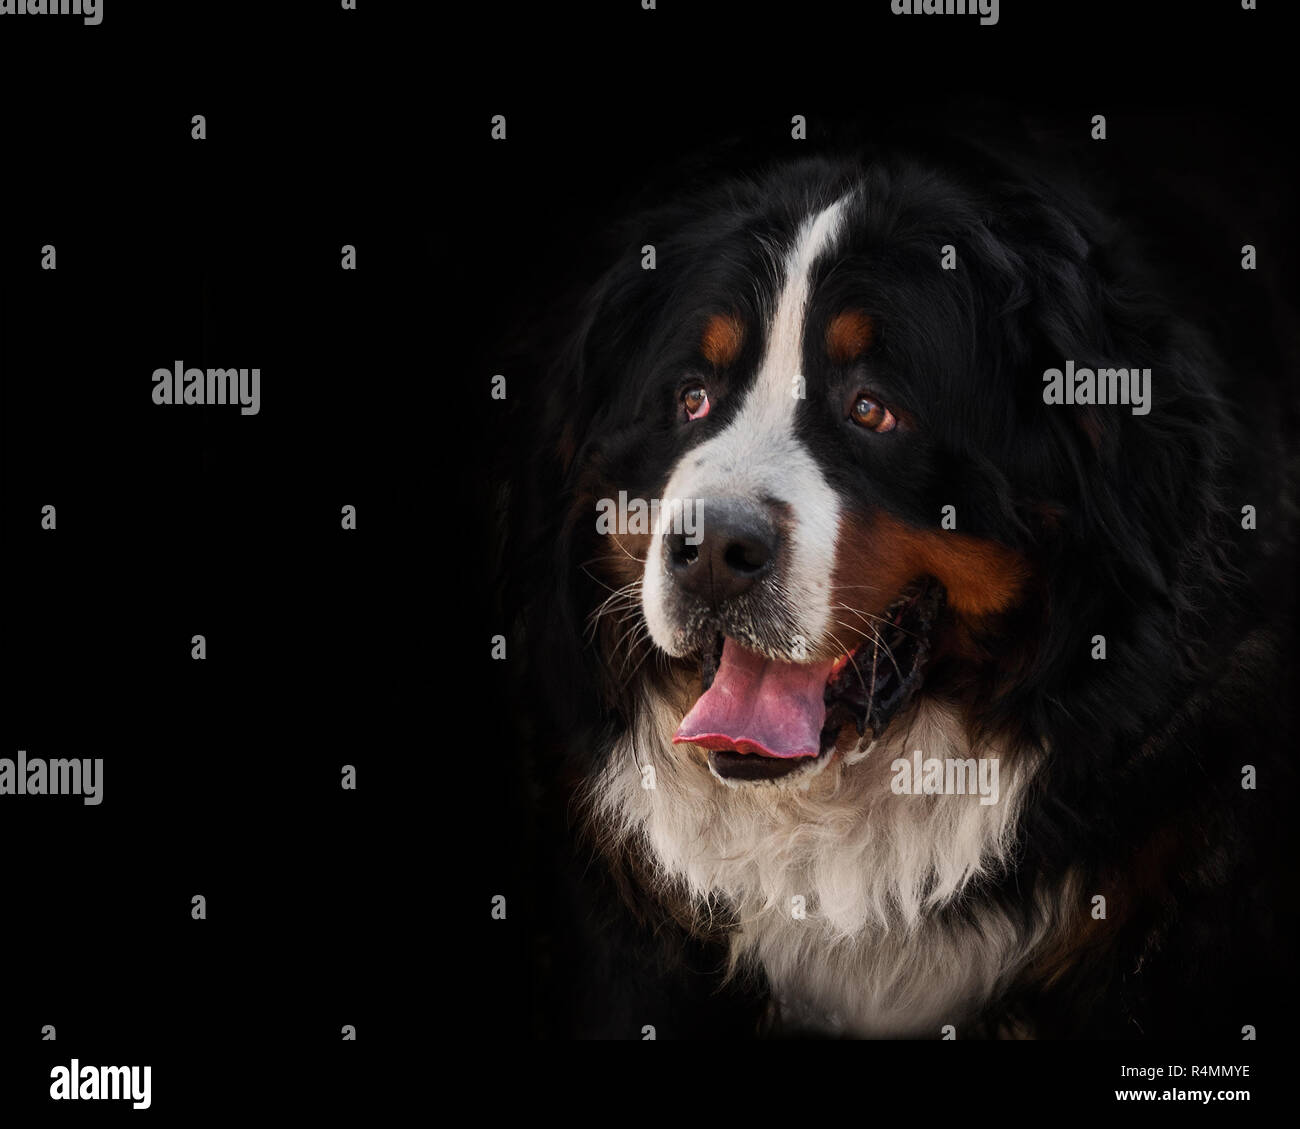 portrait of a purebred bernese mountain dog in front of black background, affable, close up - Stock Image